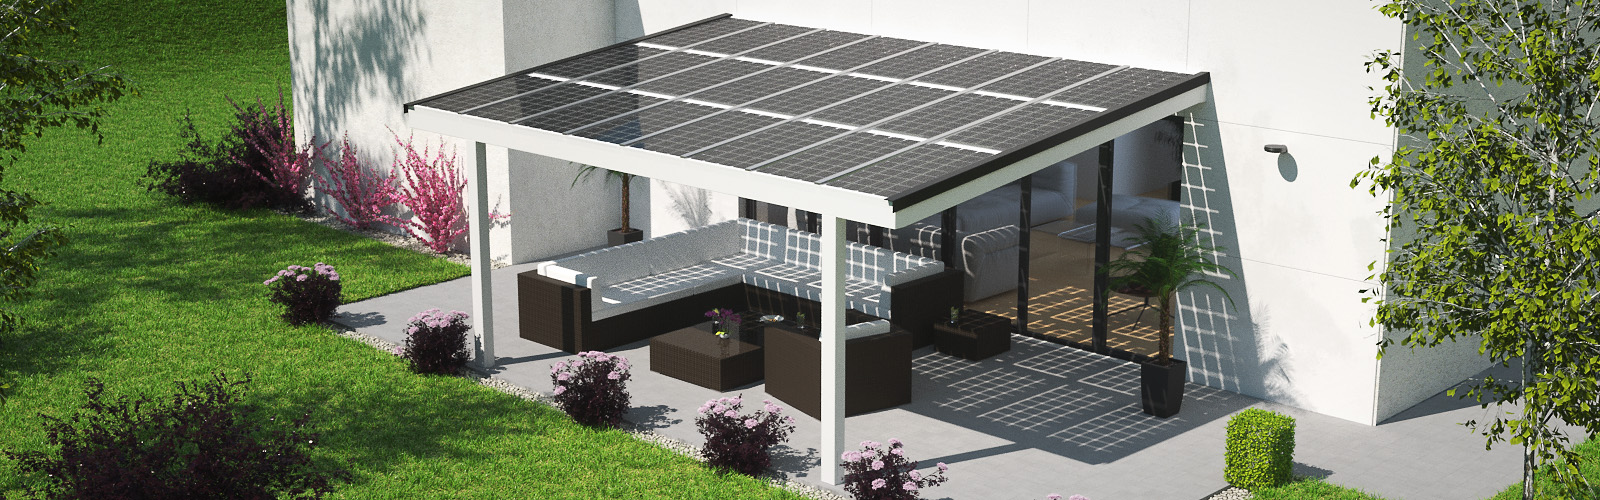 terrassen berdachung mit solar verschattung stromerzeugung witterungsschutz solarcarport. Black Bedroom Furniture Sets. Home Design Ideas